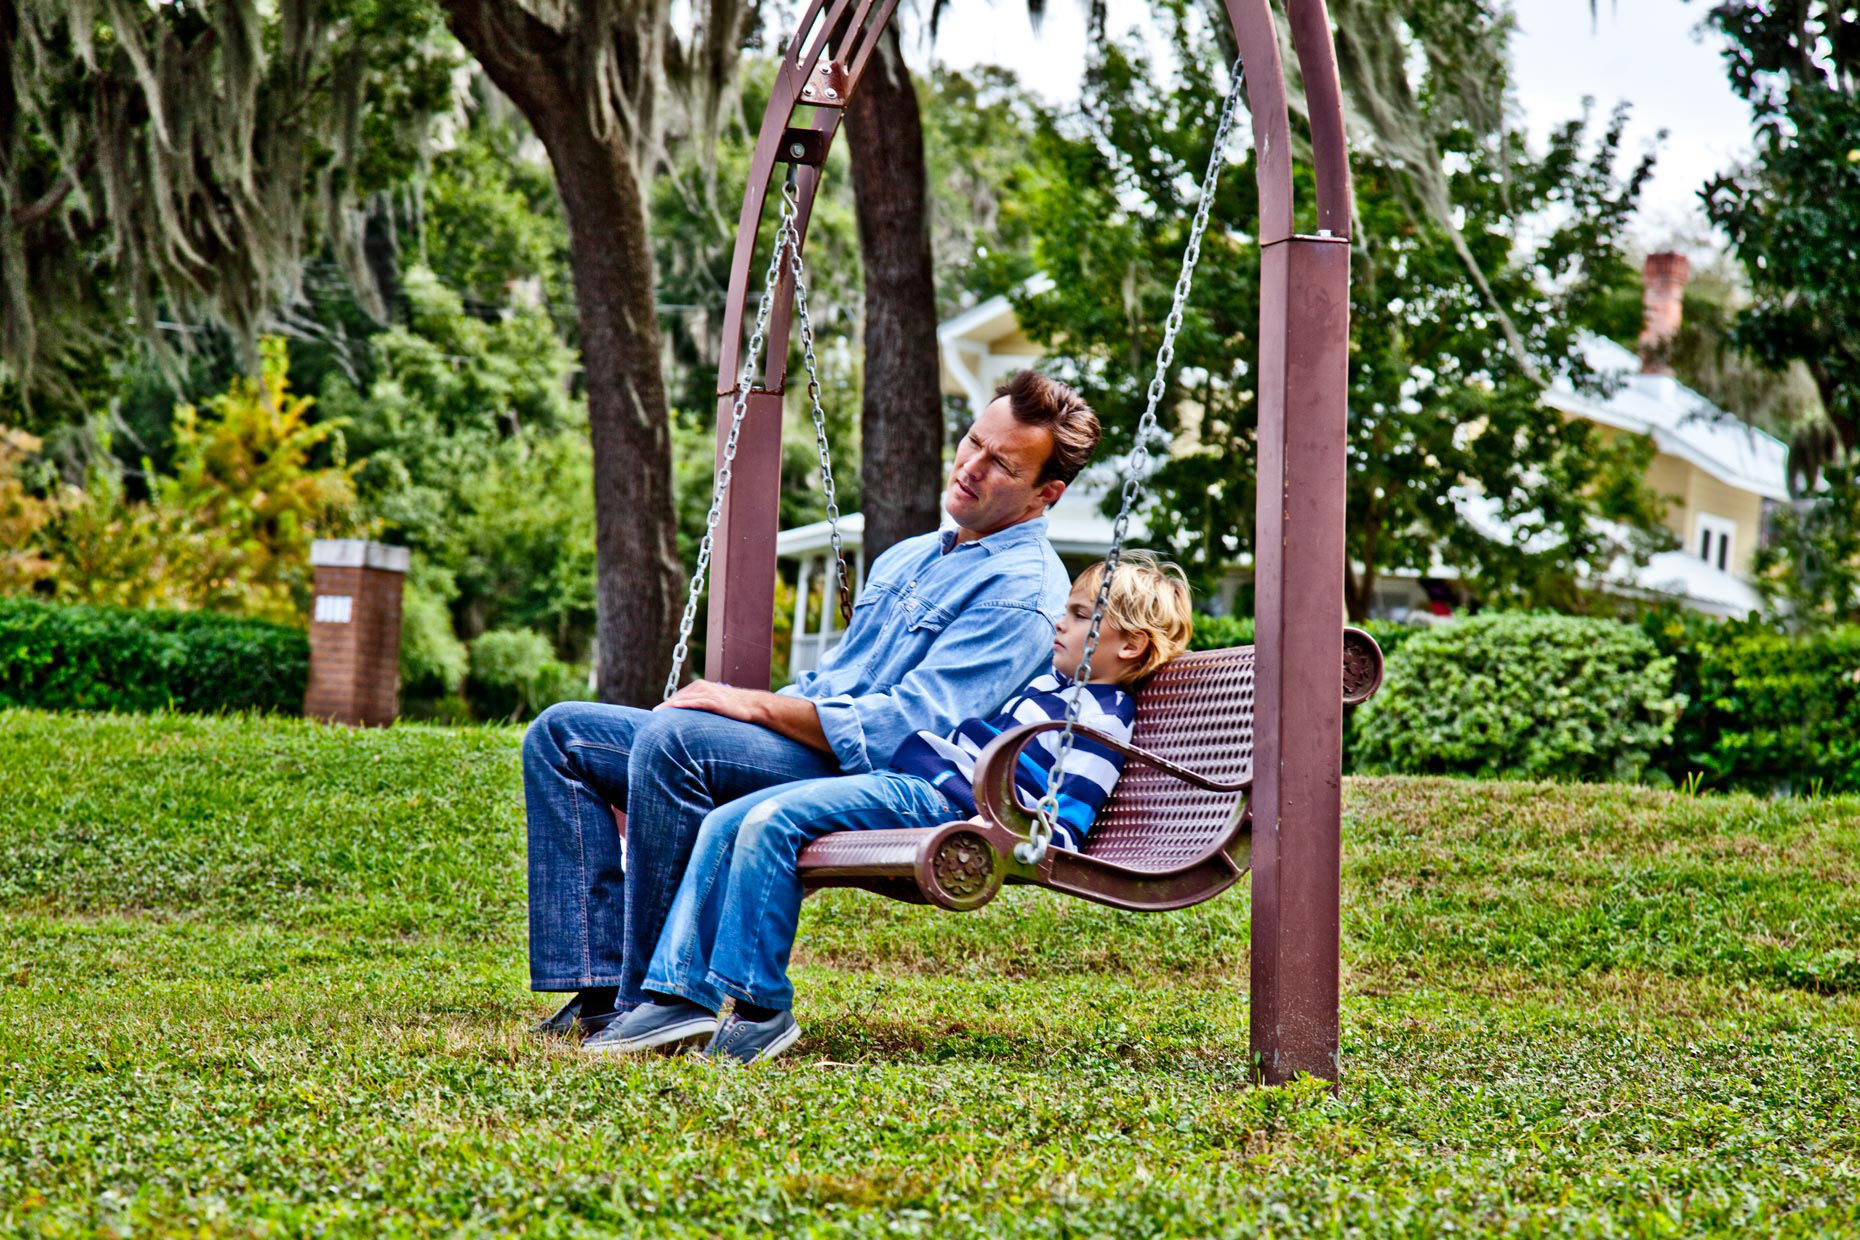 Lifestyle Photography | Dad & Son On Bench Relaxing